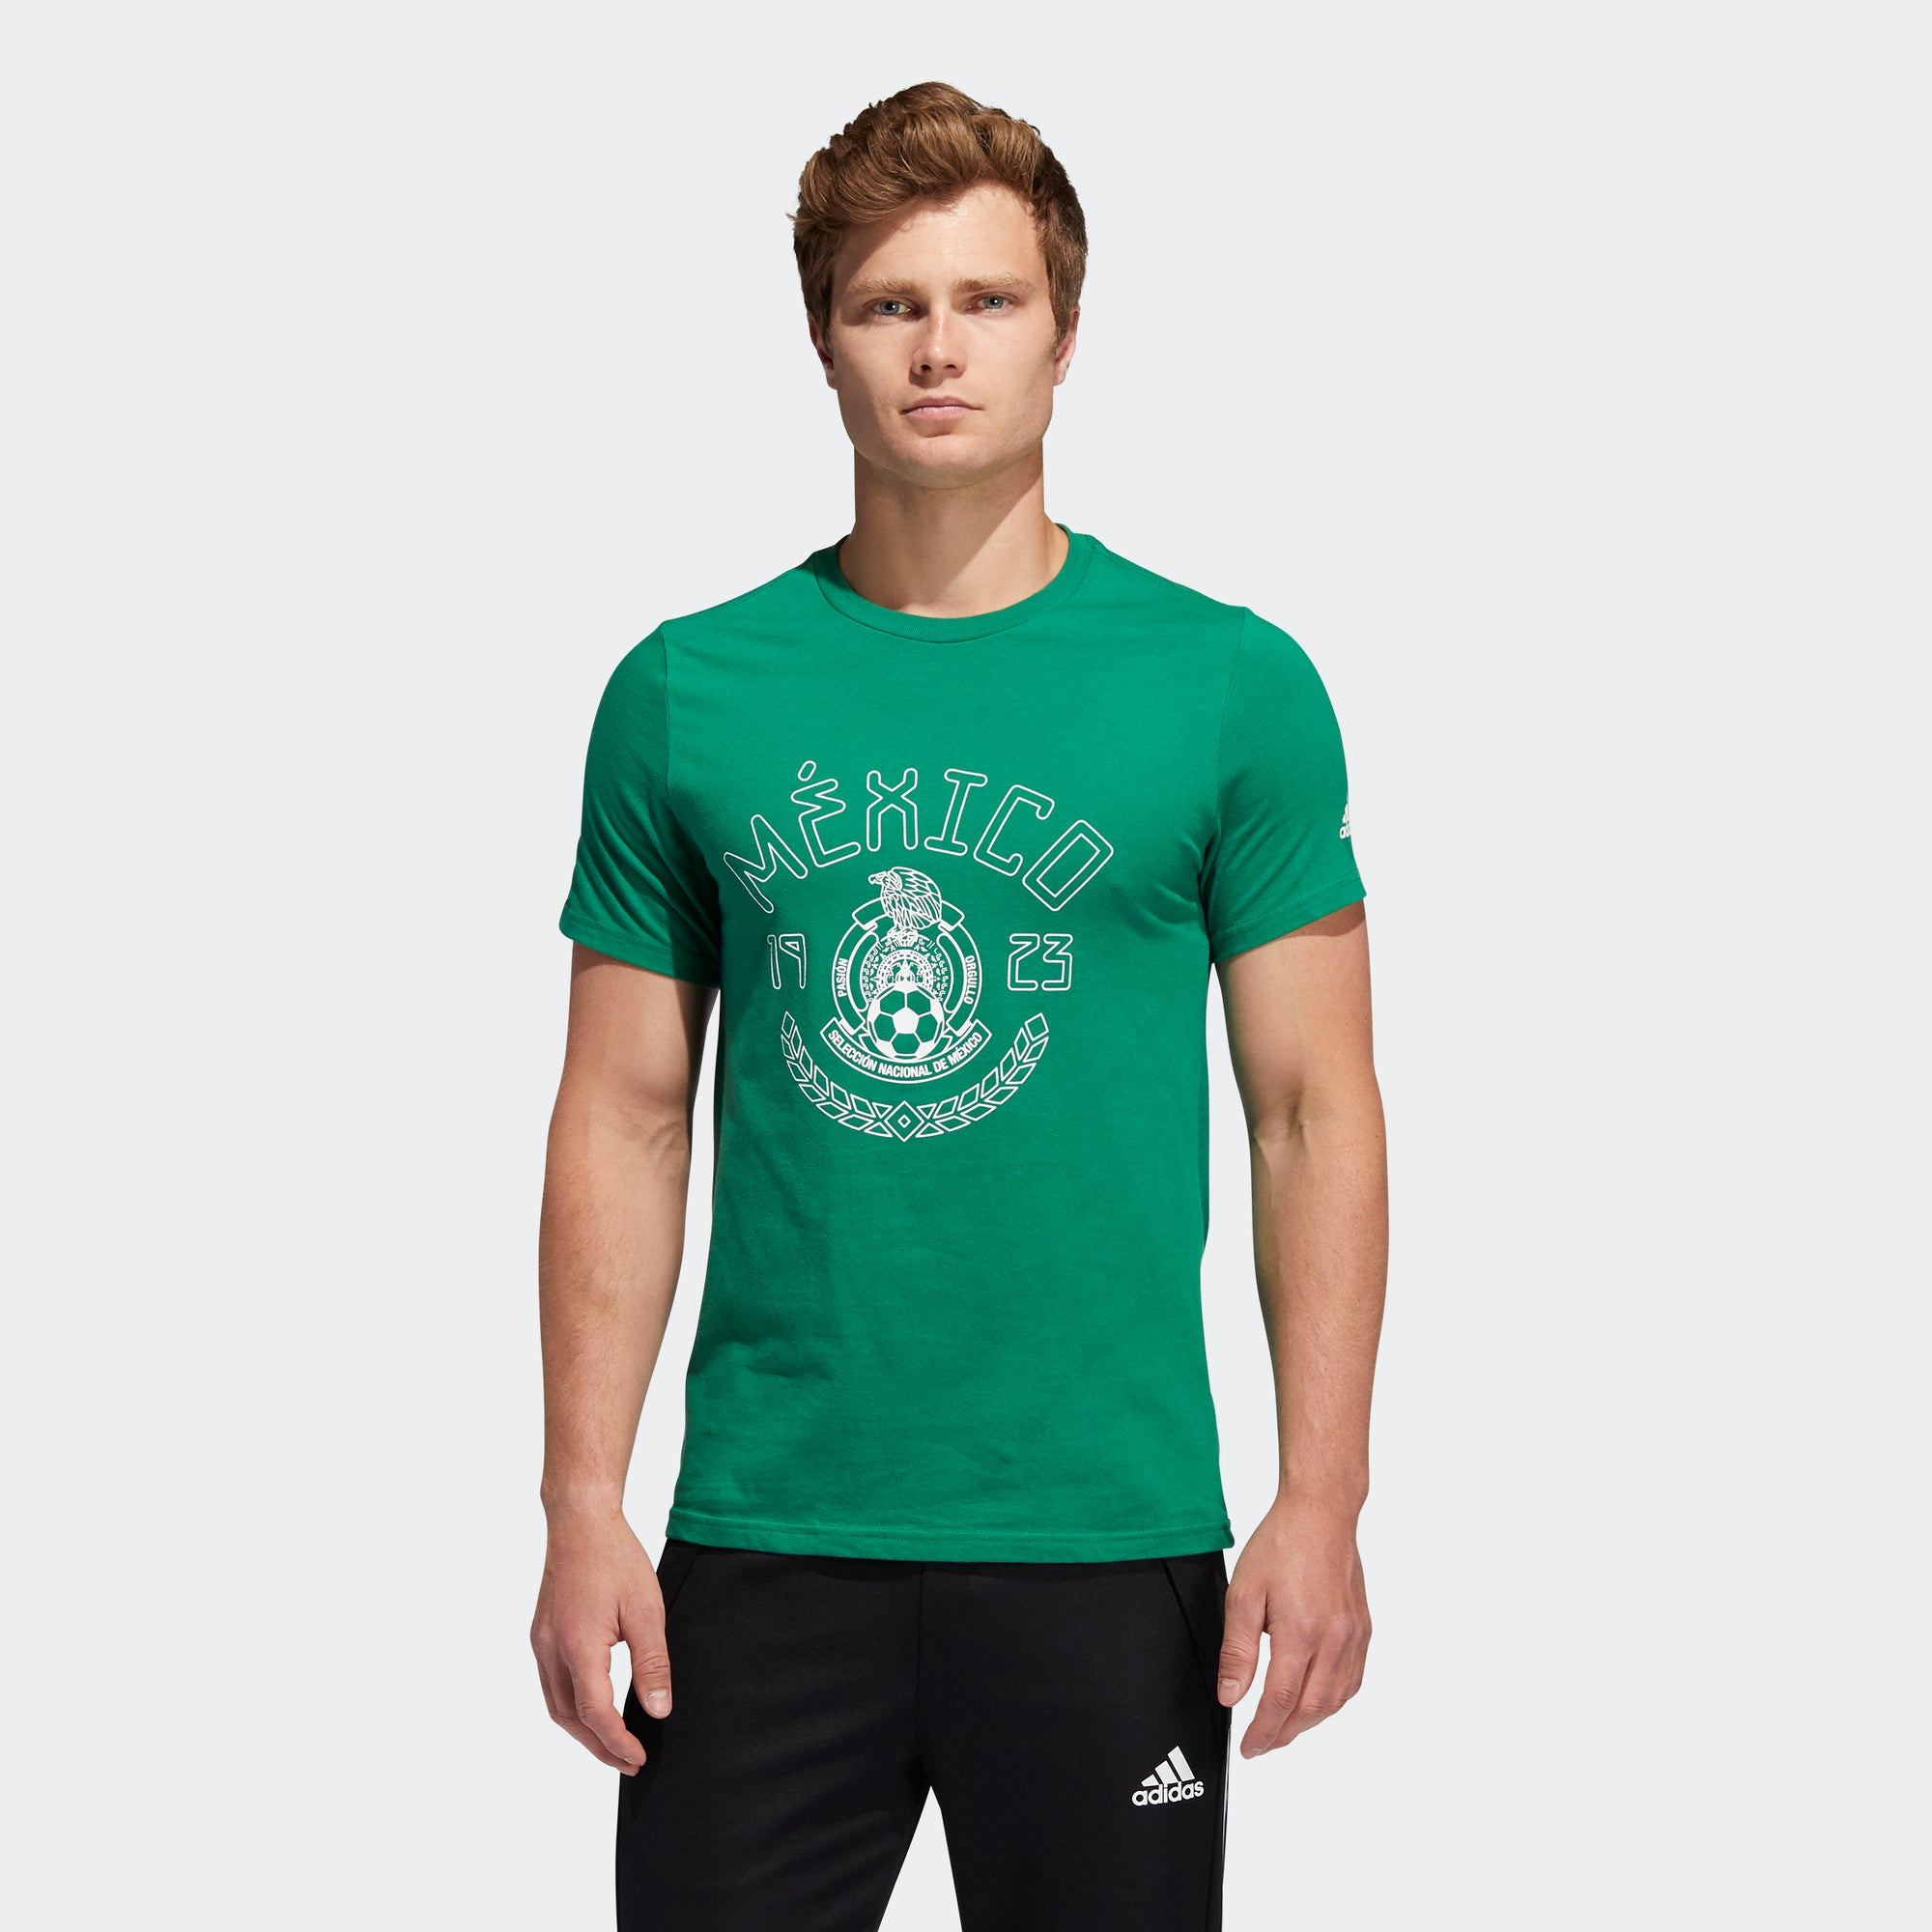 Mexico Amplifier S/S T-Shirt - Green/Kelly